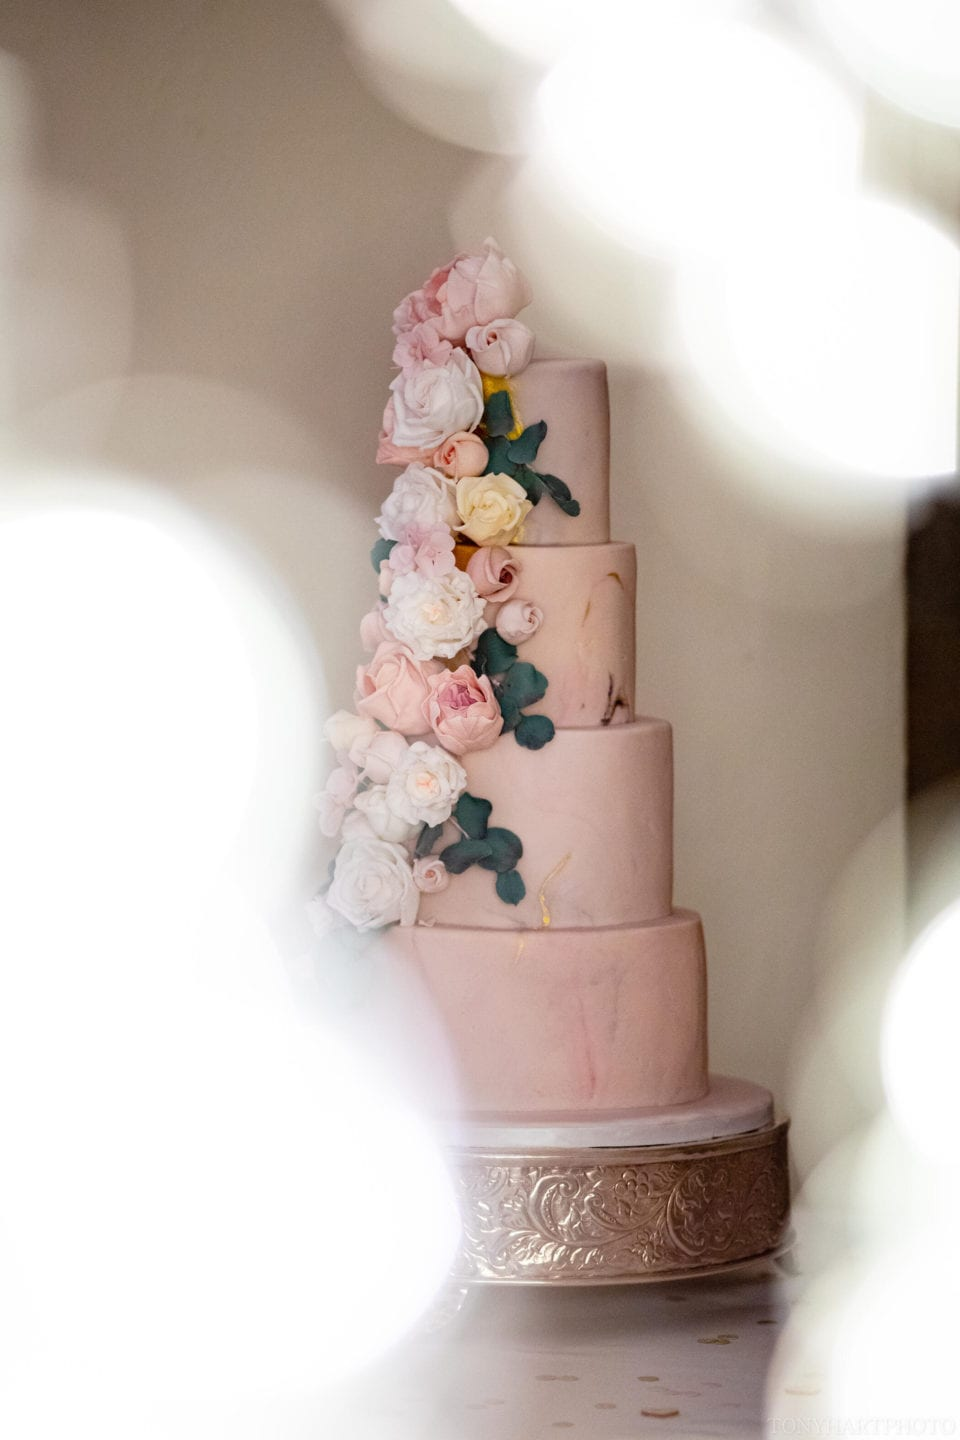 Wedding cake by Gifted Heart Cakes at Farnham Castle